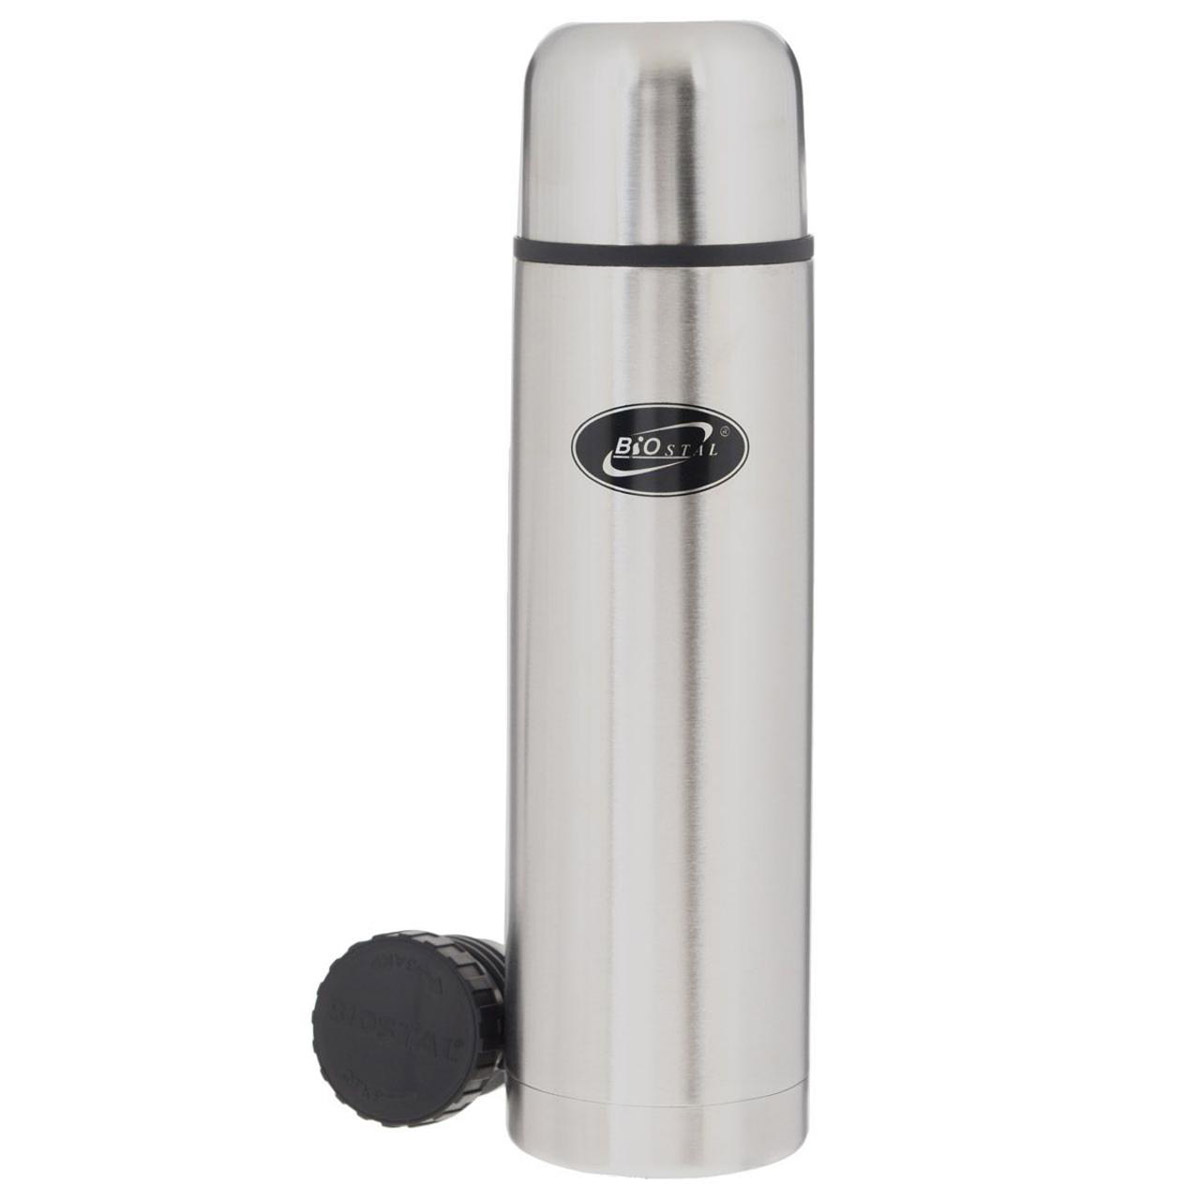 Thermos BIOSTAL NB-1000 (Volume 1 liter, stainless steel, time of heat preservation 19 hours, second Plug included) acacia 1633301 outdoor double layer heat preservation stainless steel kettle silver 750ml